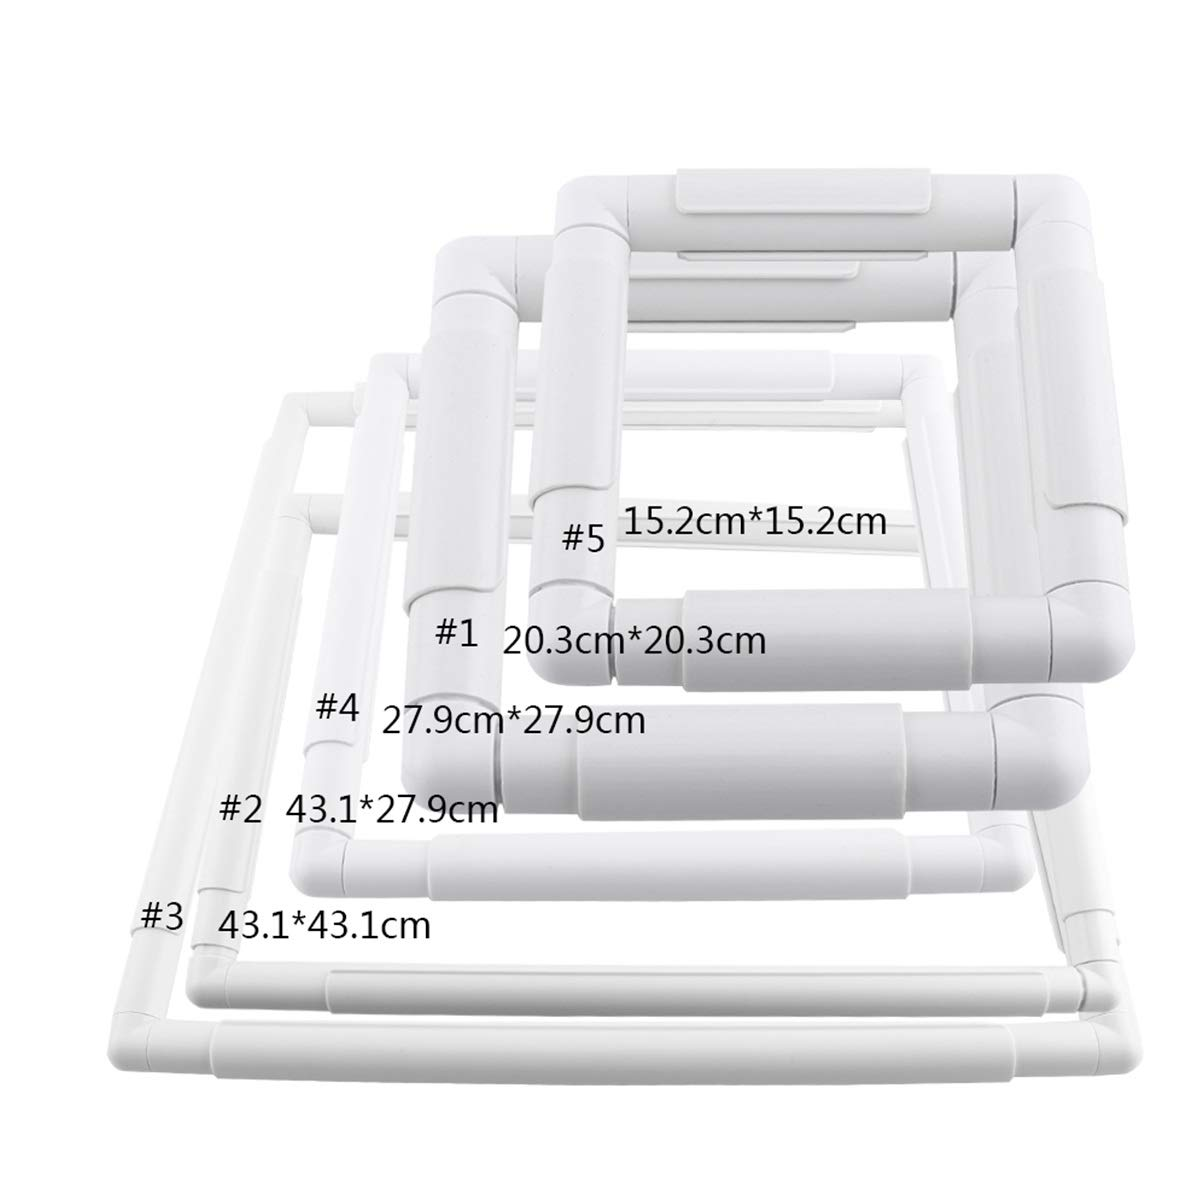 Size : 20.3 * 20.3cm Square Shape Embroidery Frame Set Plastic Cross Stitch Handhold Frame Hoop Sewing Craft DIY Tool